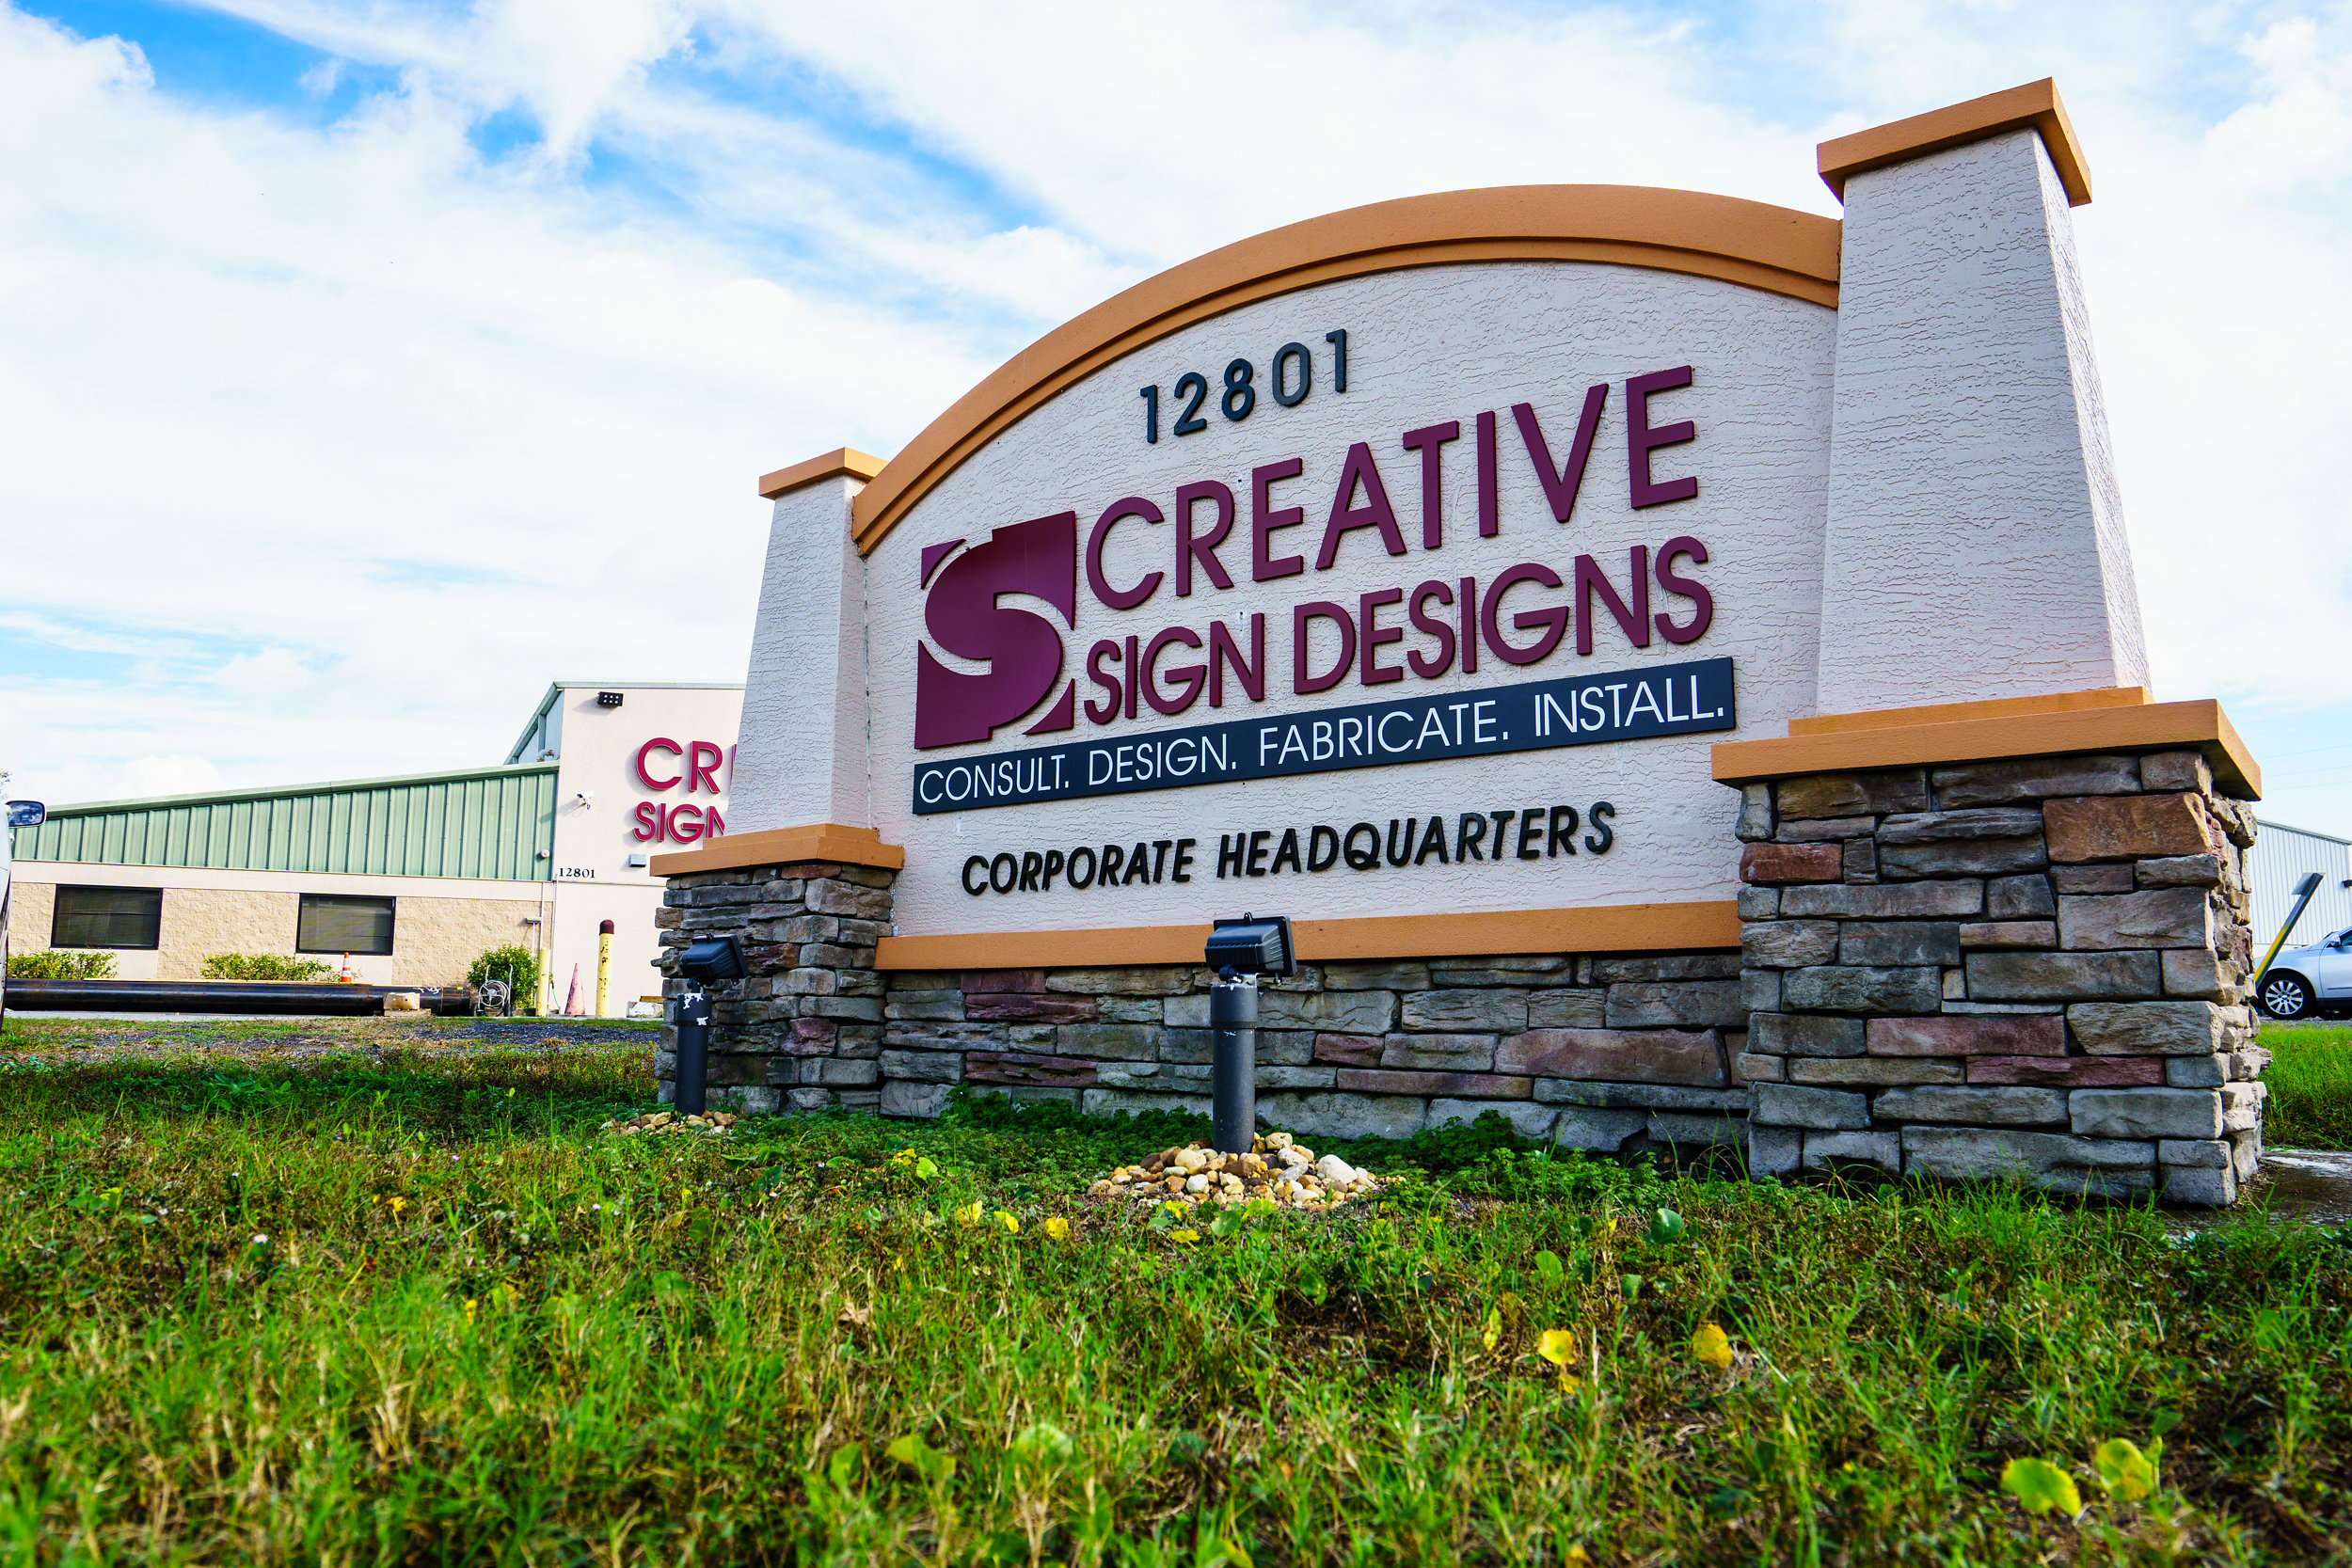 Facilities Amp Warehouses Creative Sign Designs